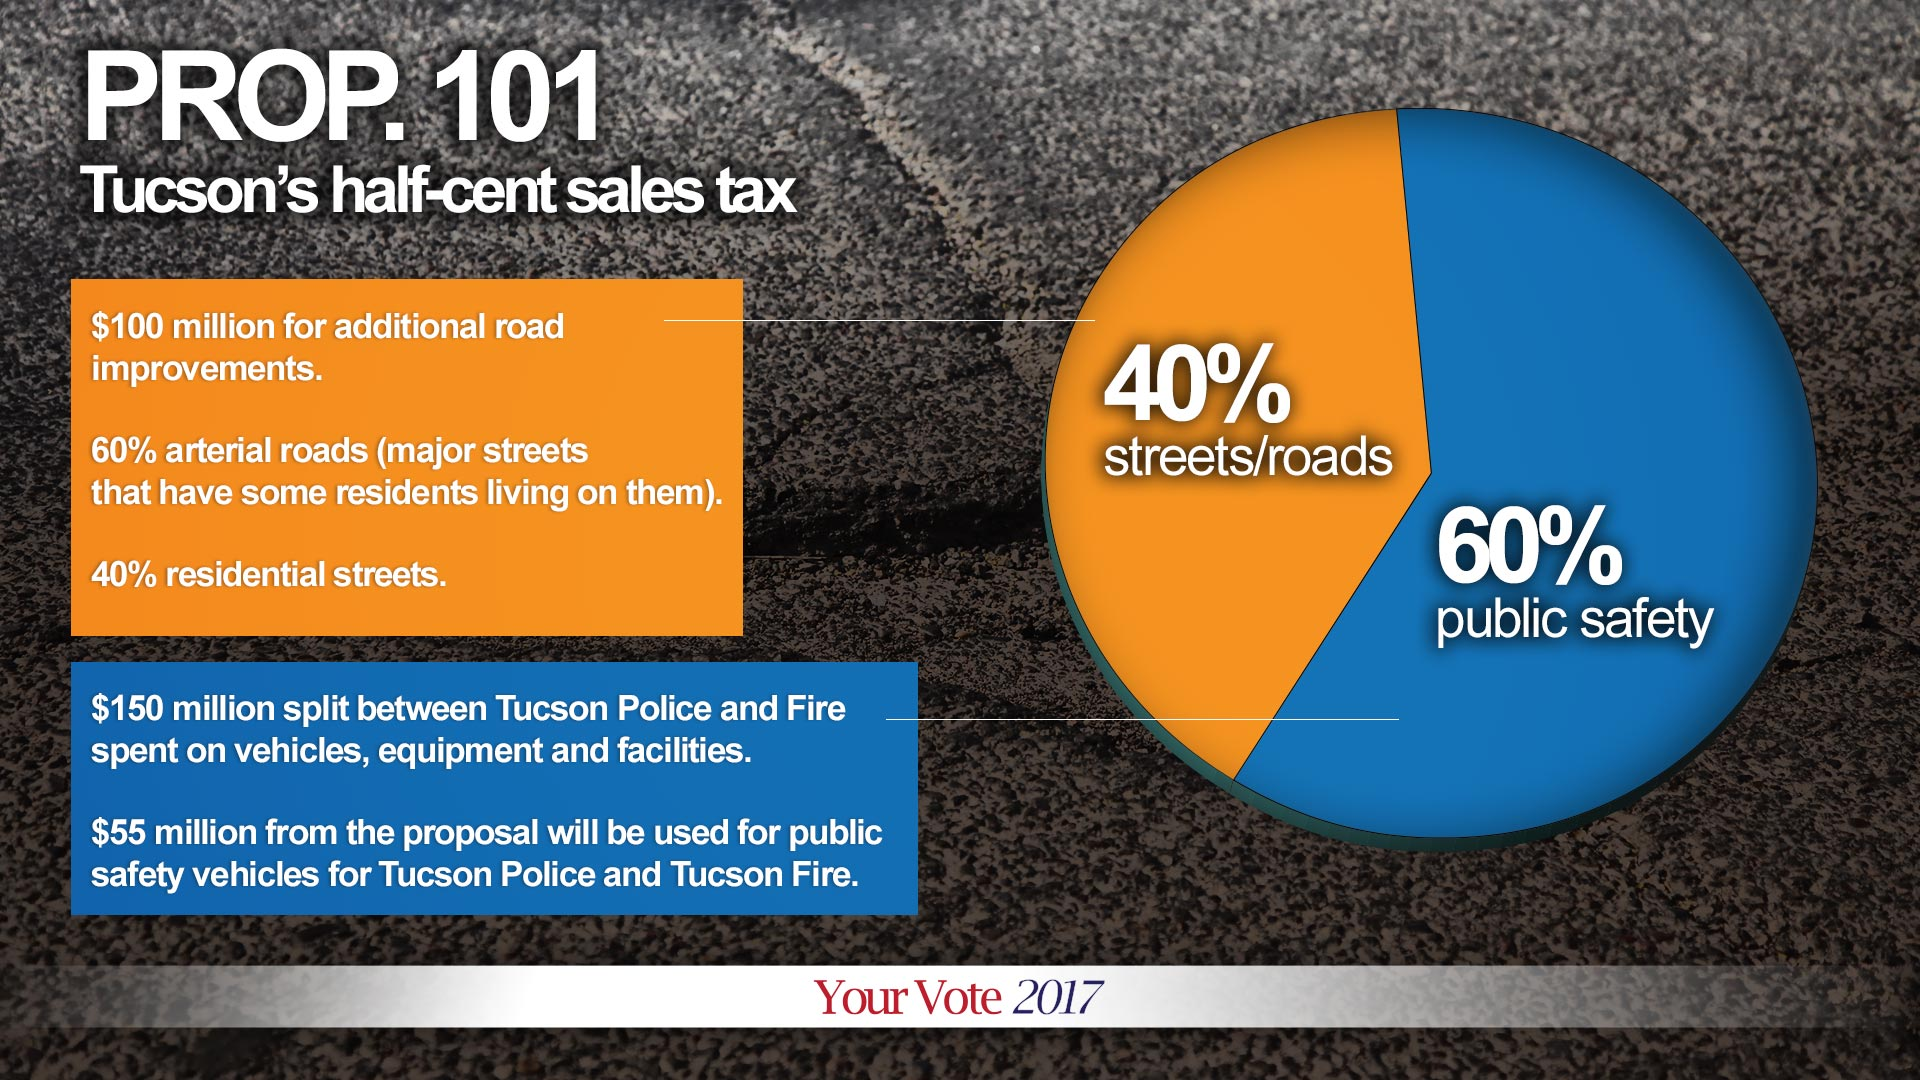 Proposition 101 would raise sales tax in Tucson by half a cent, and bring in $250 million over five years, the city said.